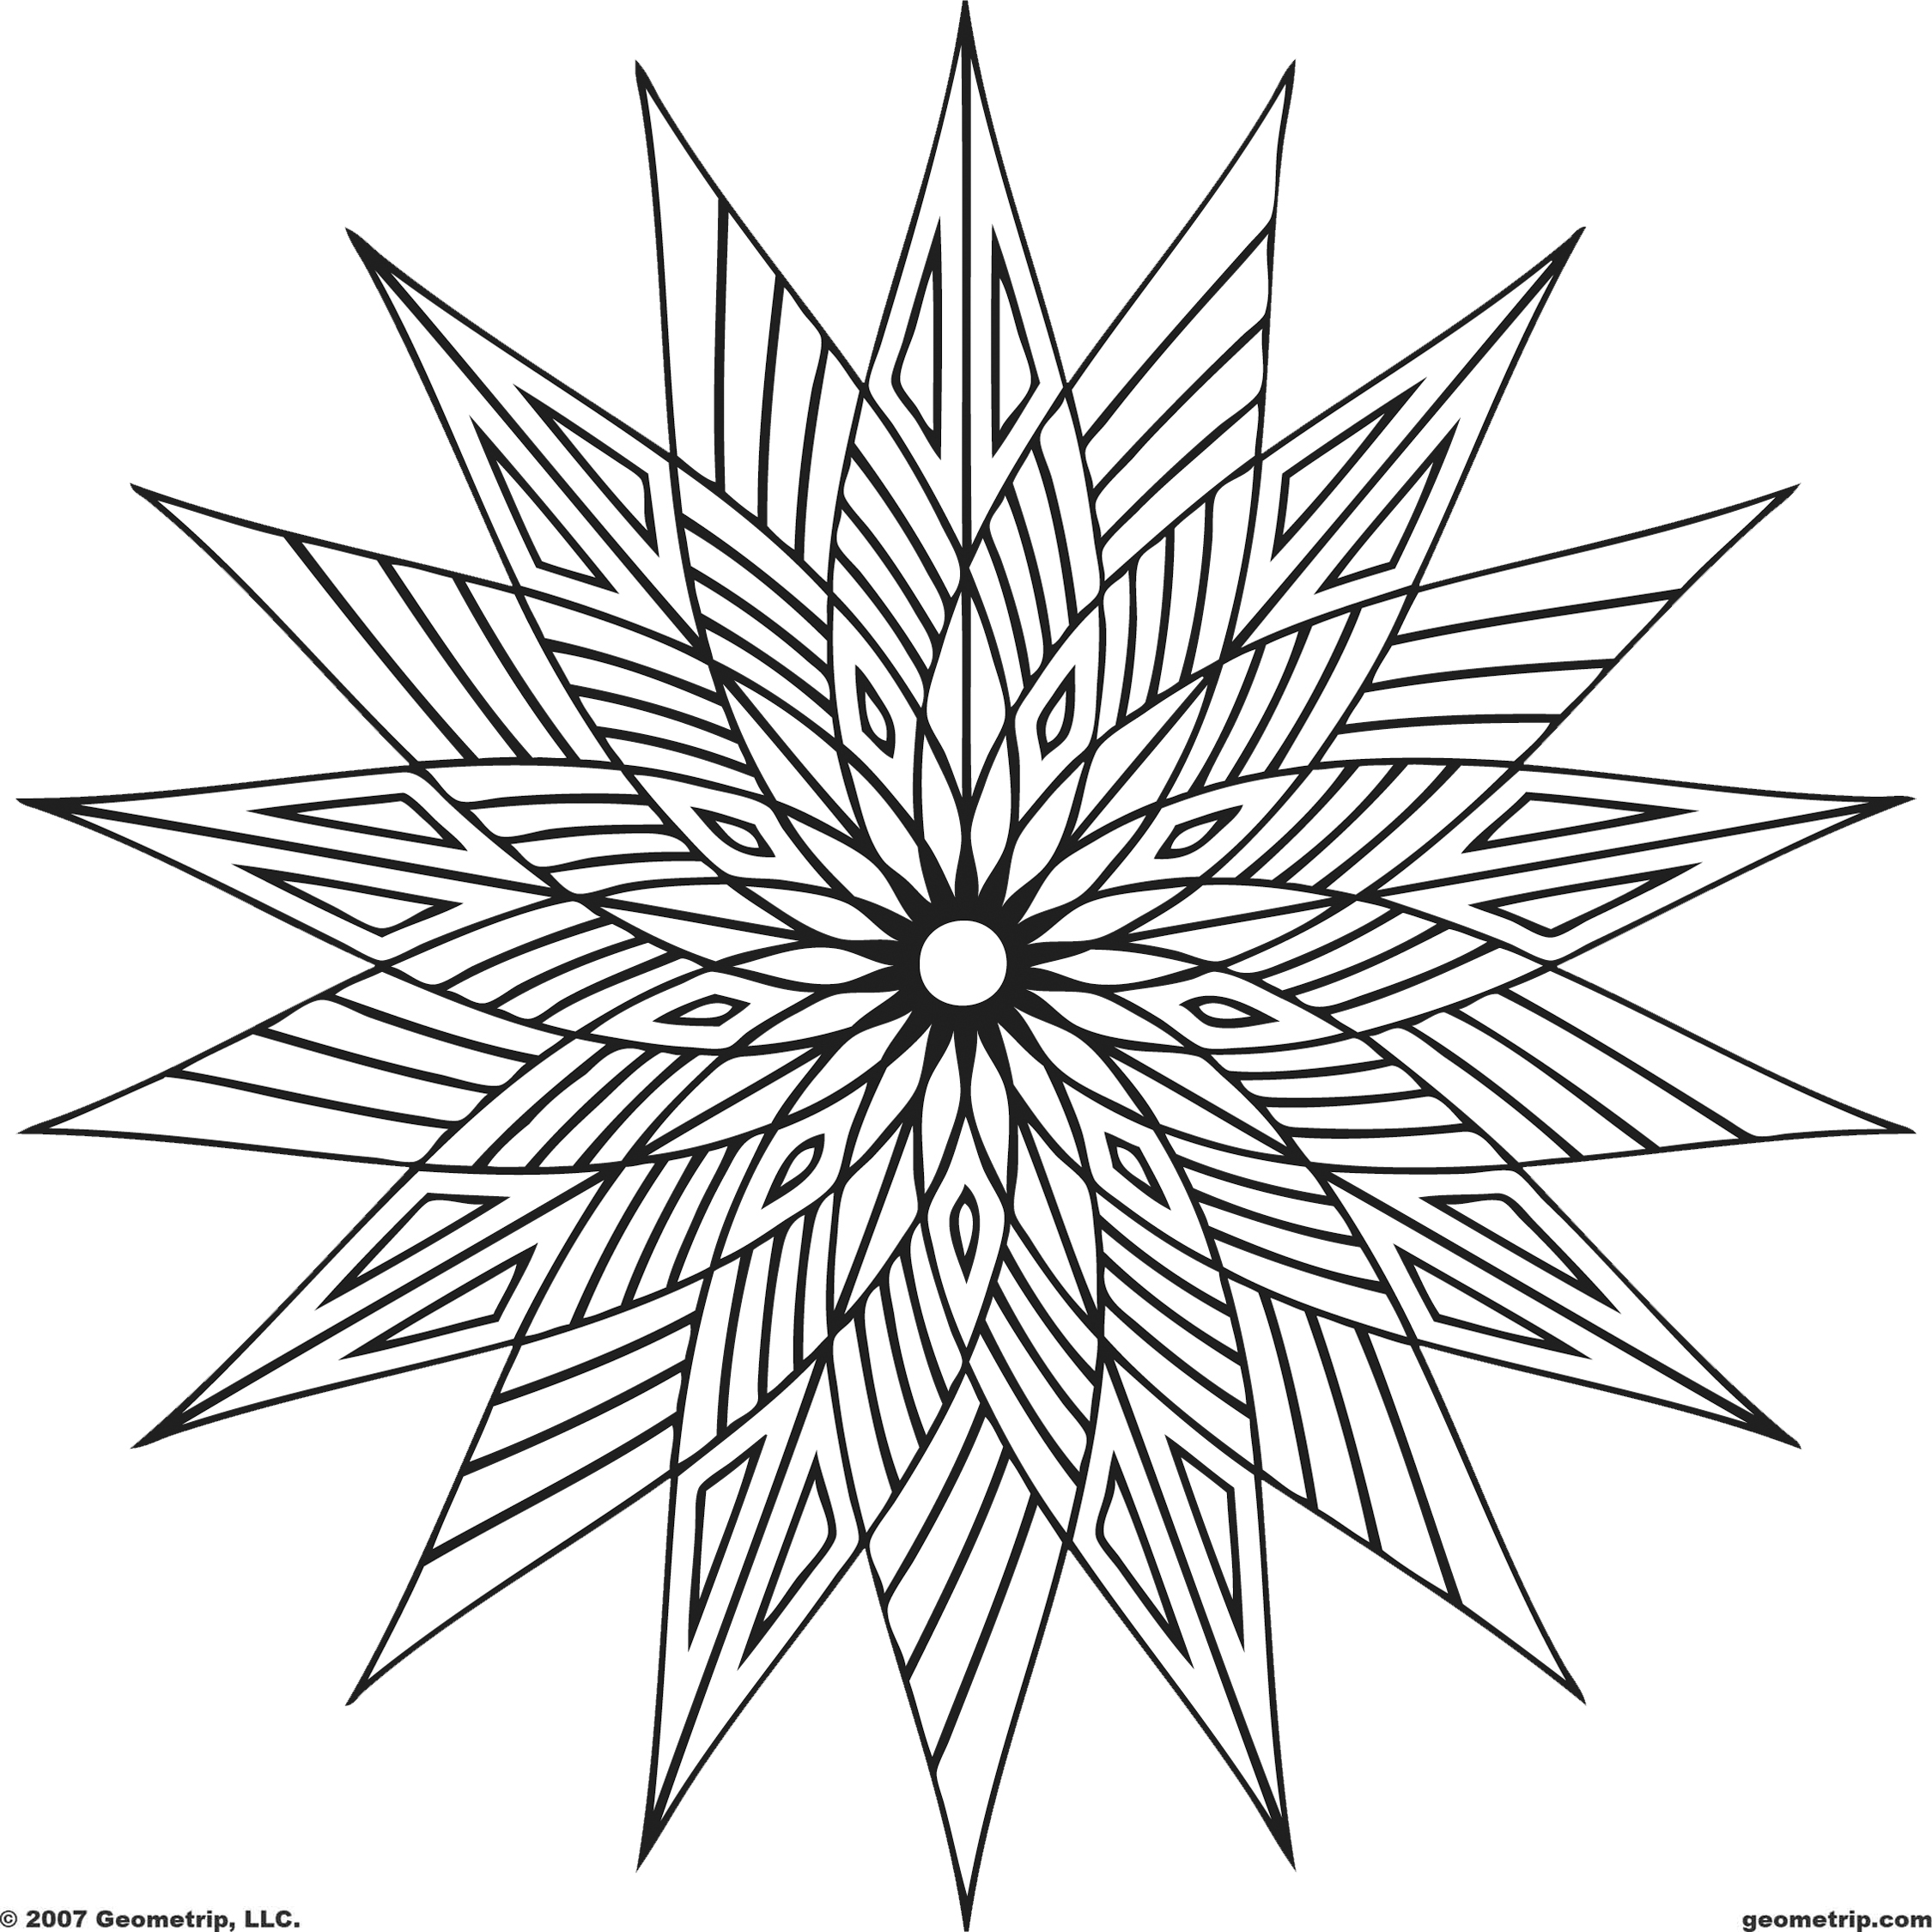 shapes images for coloring free printable geometric coloring pages for adults images shapes for coloring